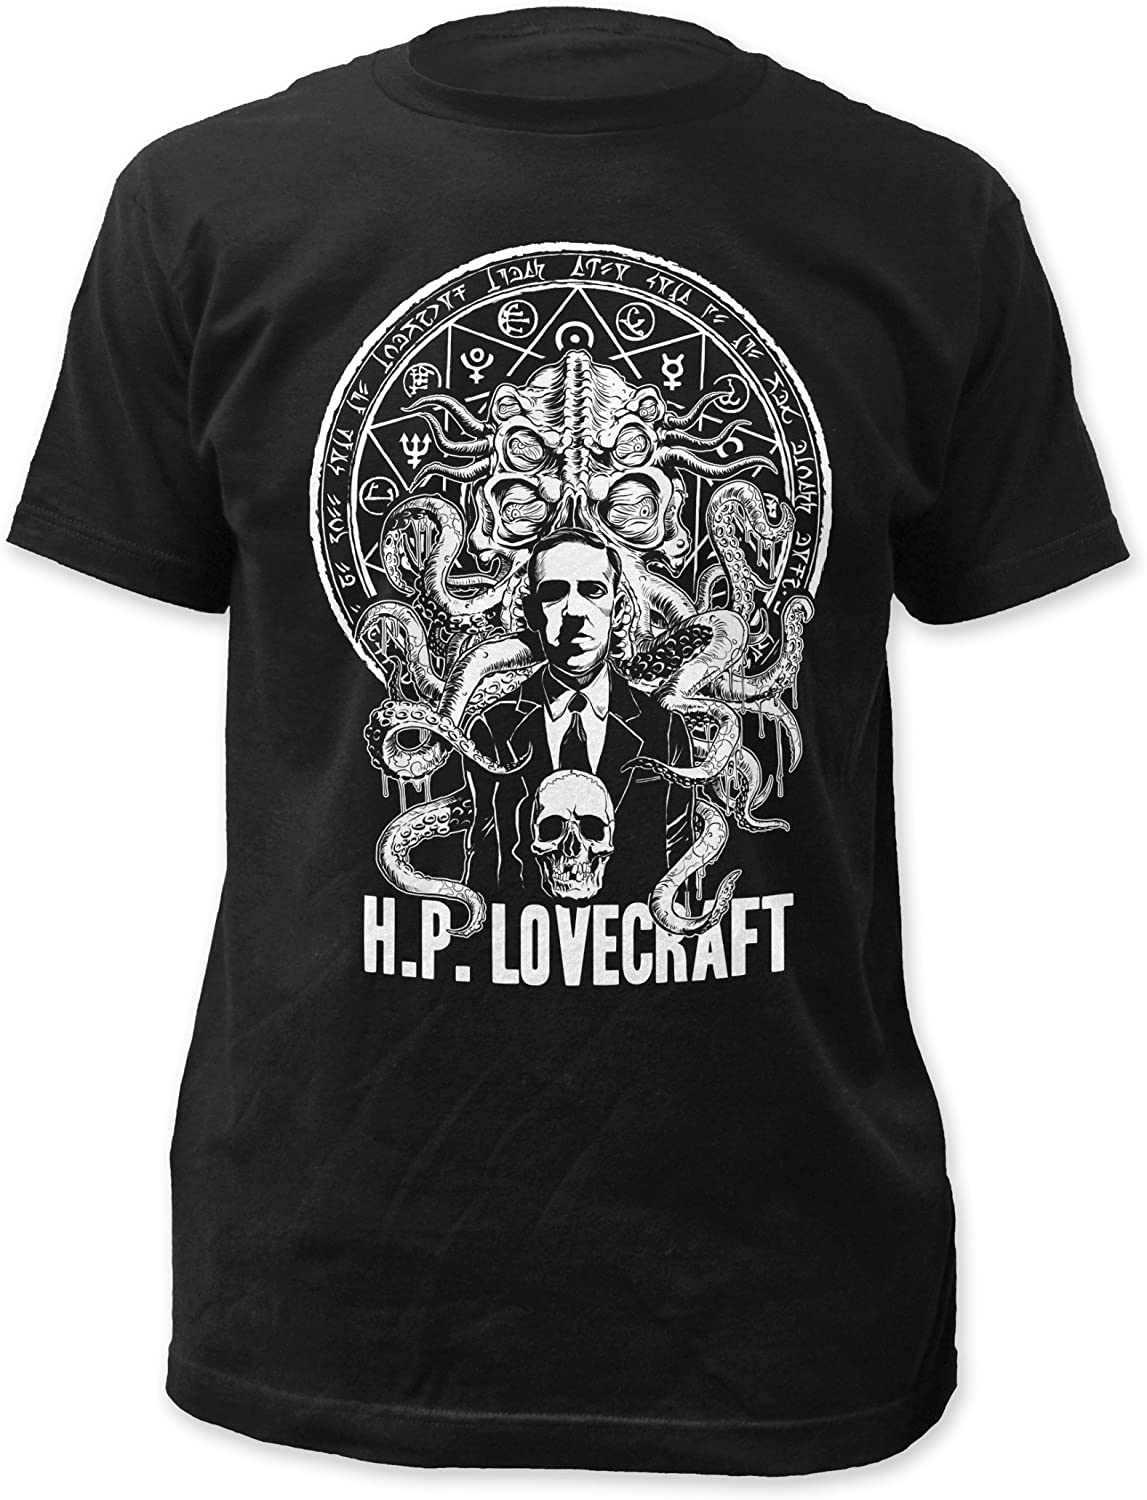 Impact Originals H.P. Lovecraft Fitted Jersey tee